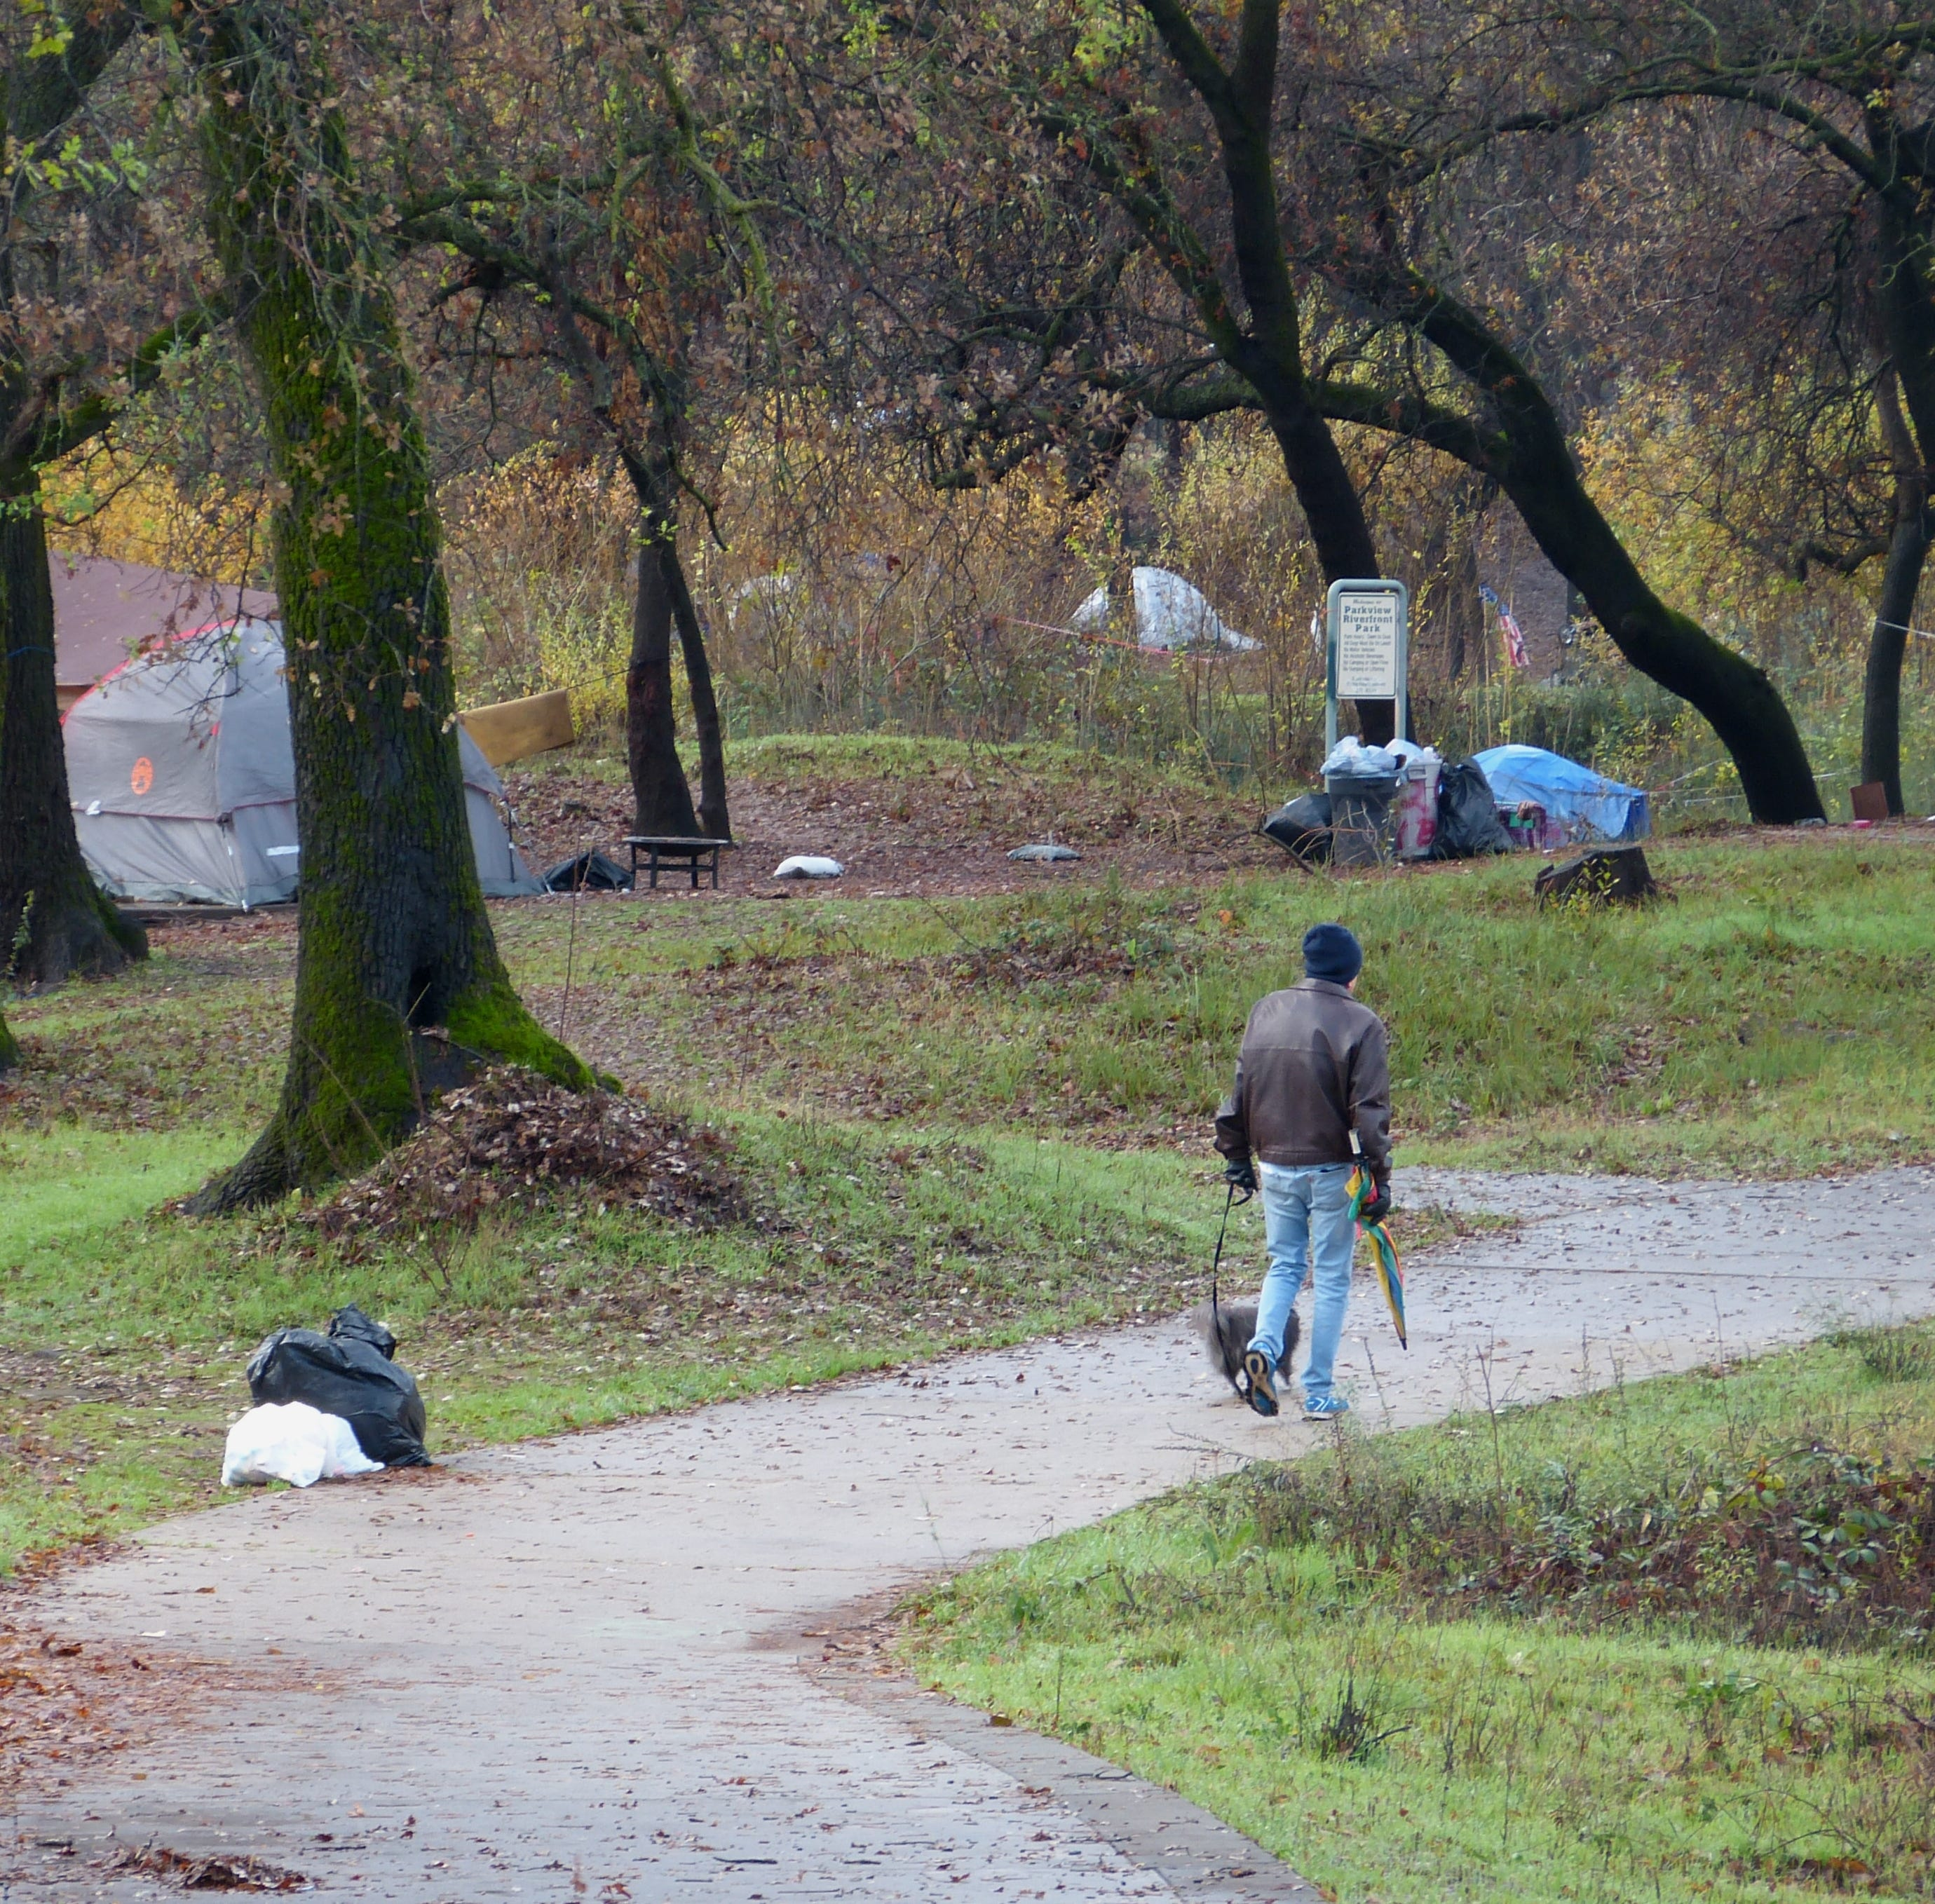 Redding takes aim at no-camping laws as more homeless tents pop up after court ruling